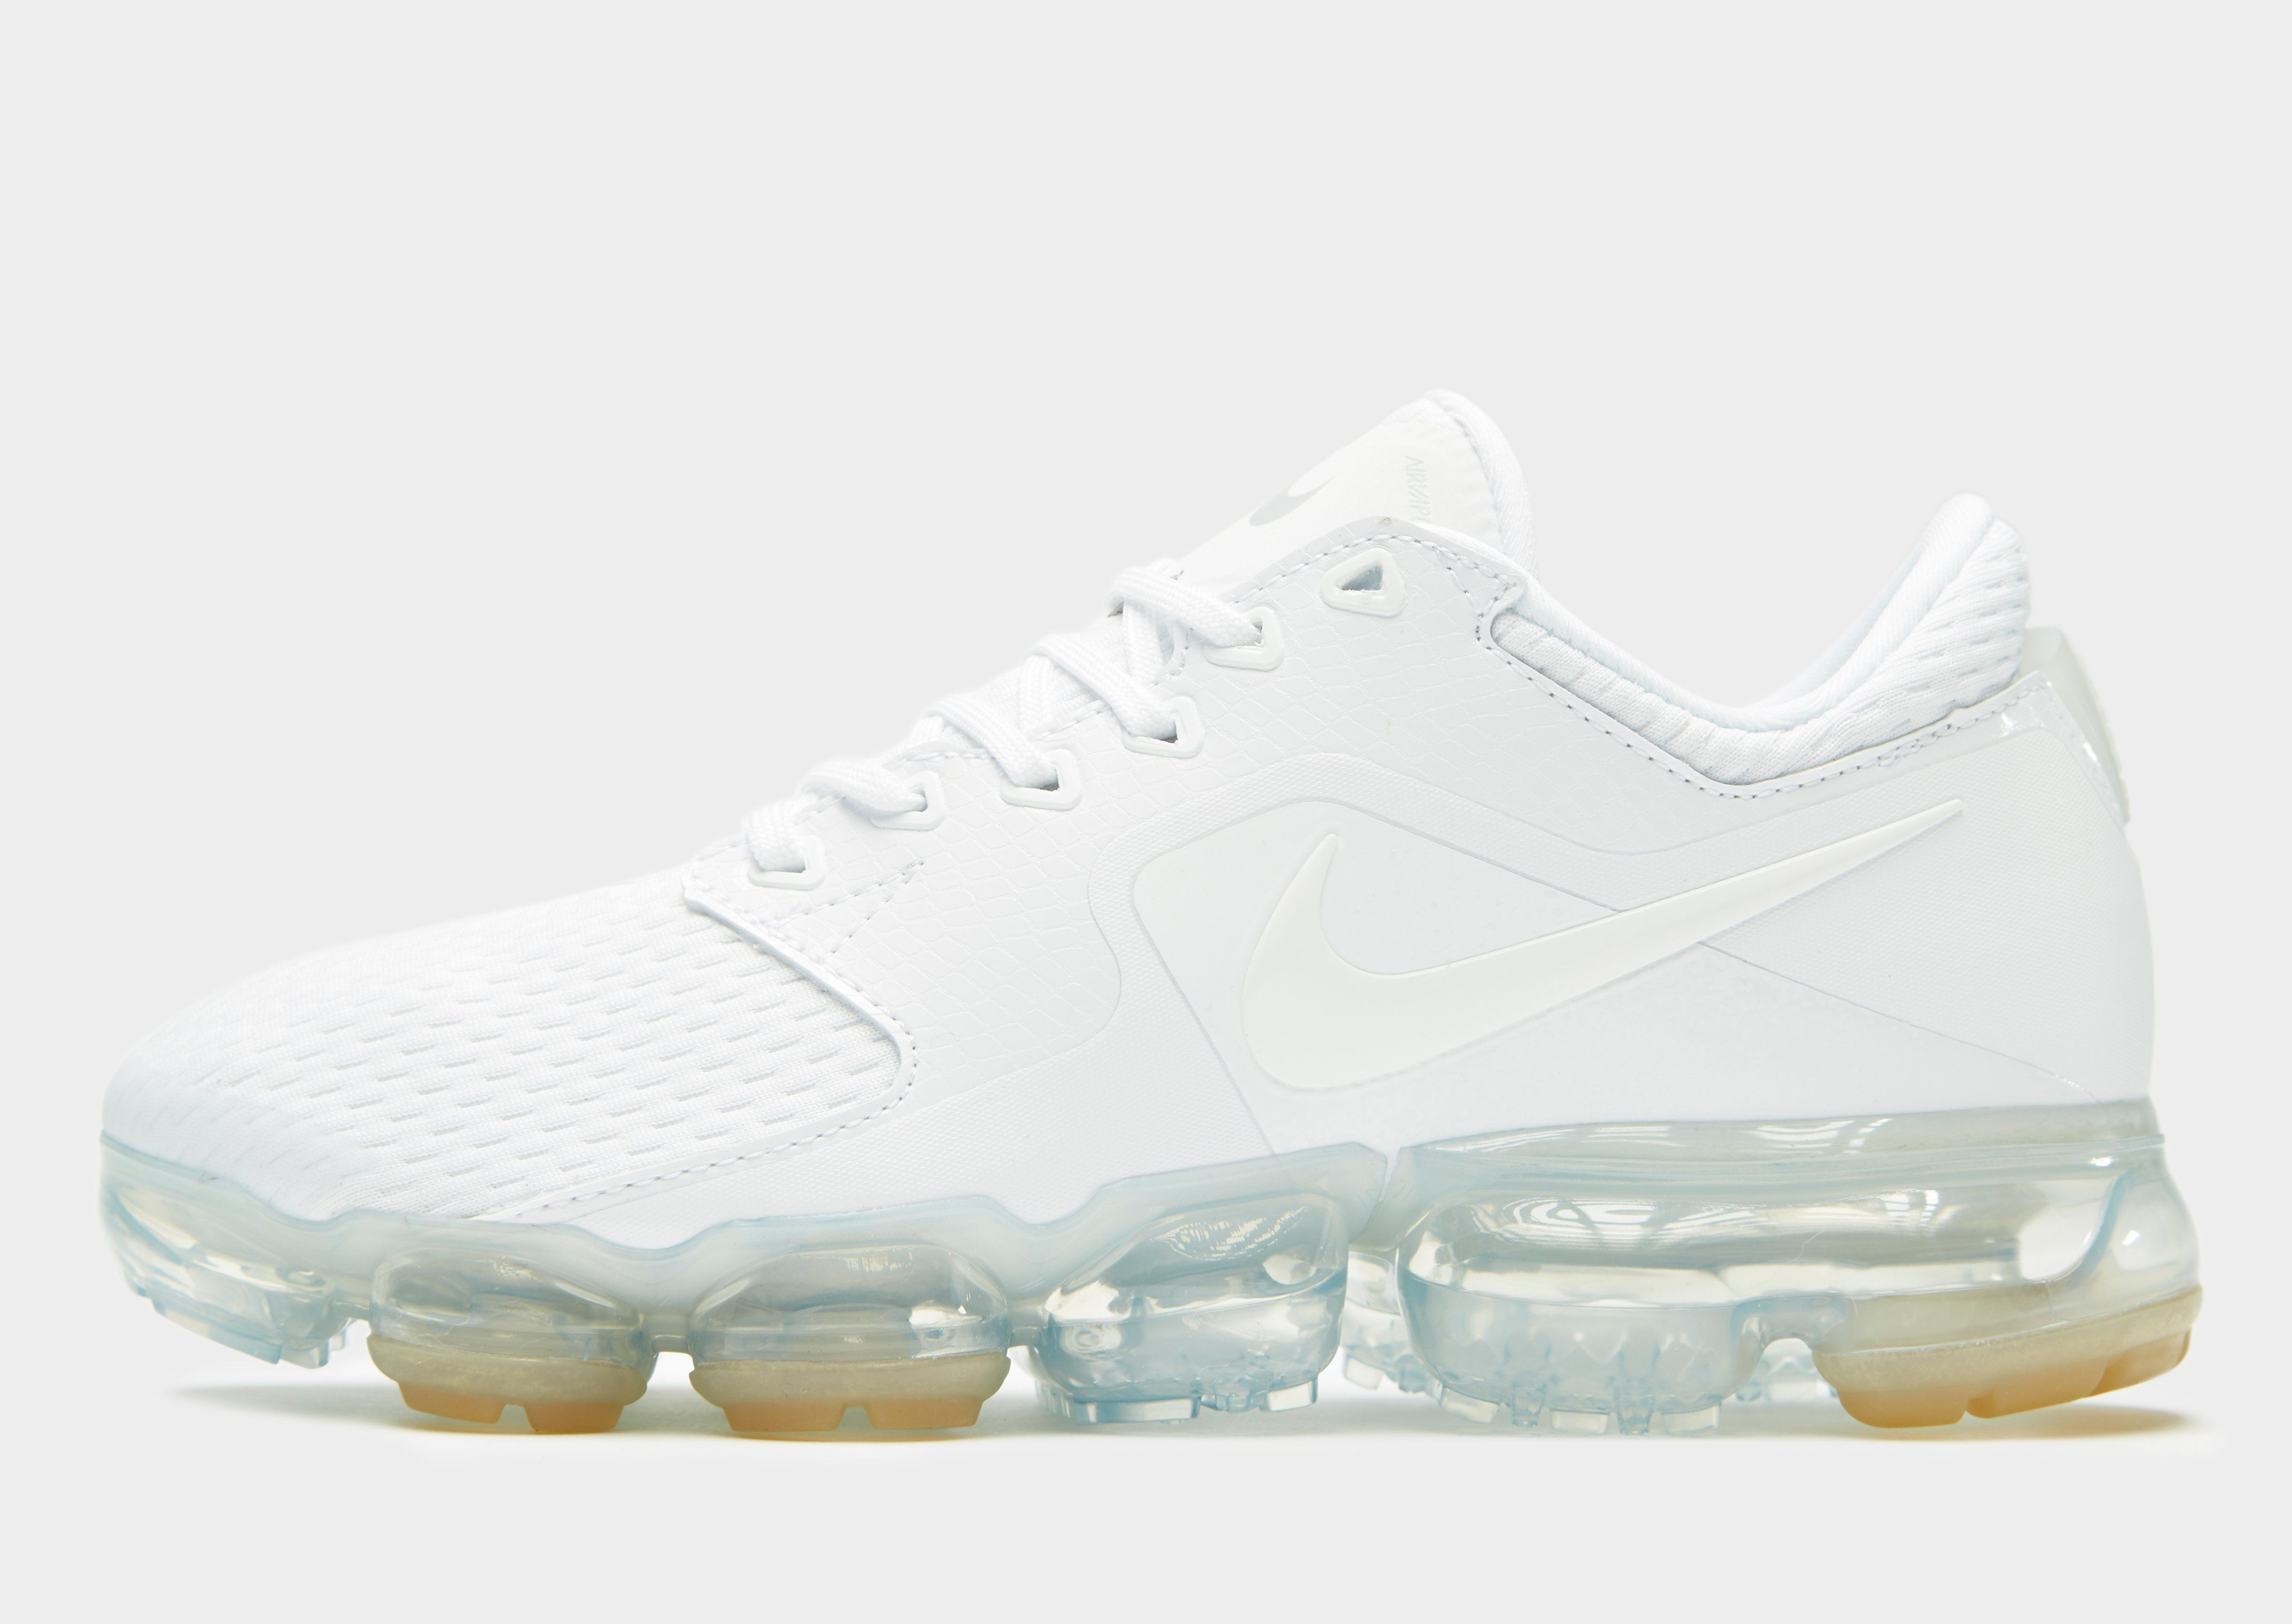 new product 44677 af624 Nike Air VaporMax Women s - Shop online for Nike Air VaporMax Women s with  JD Sports,